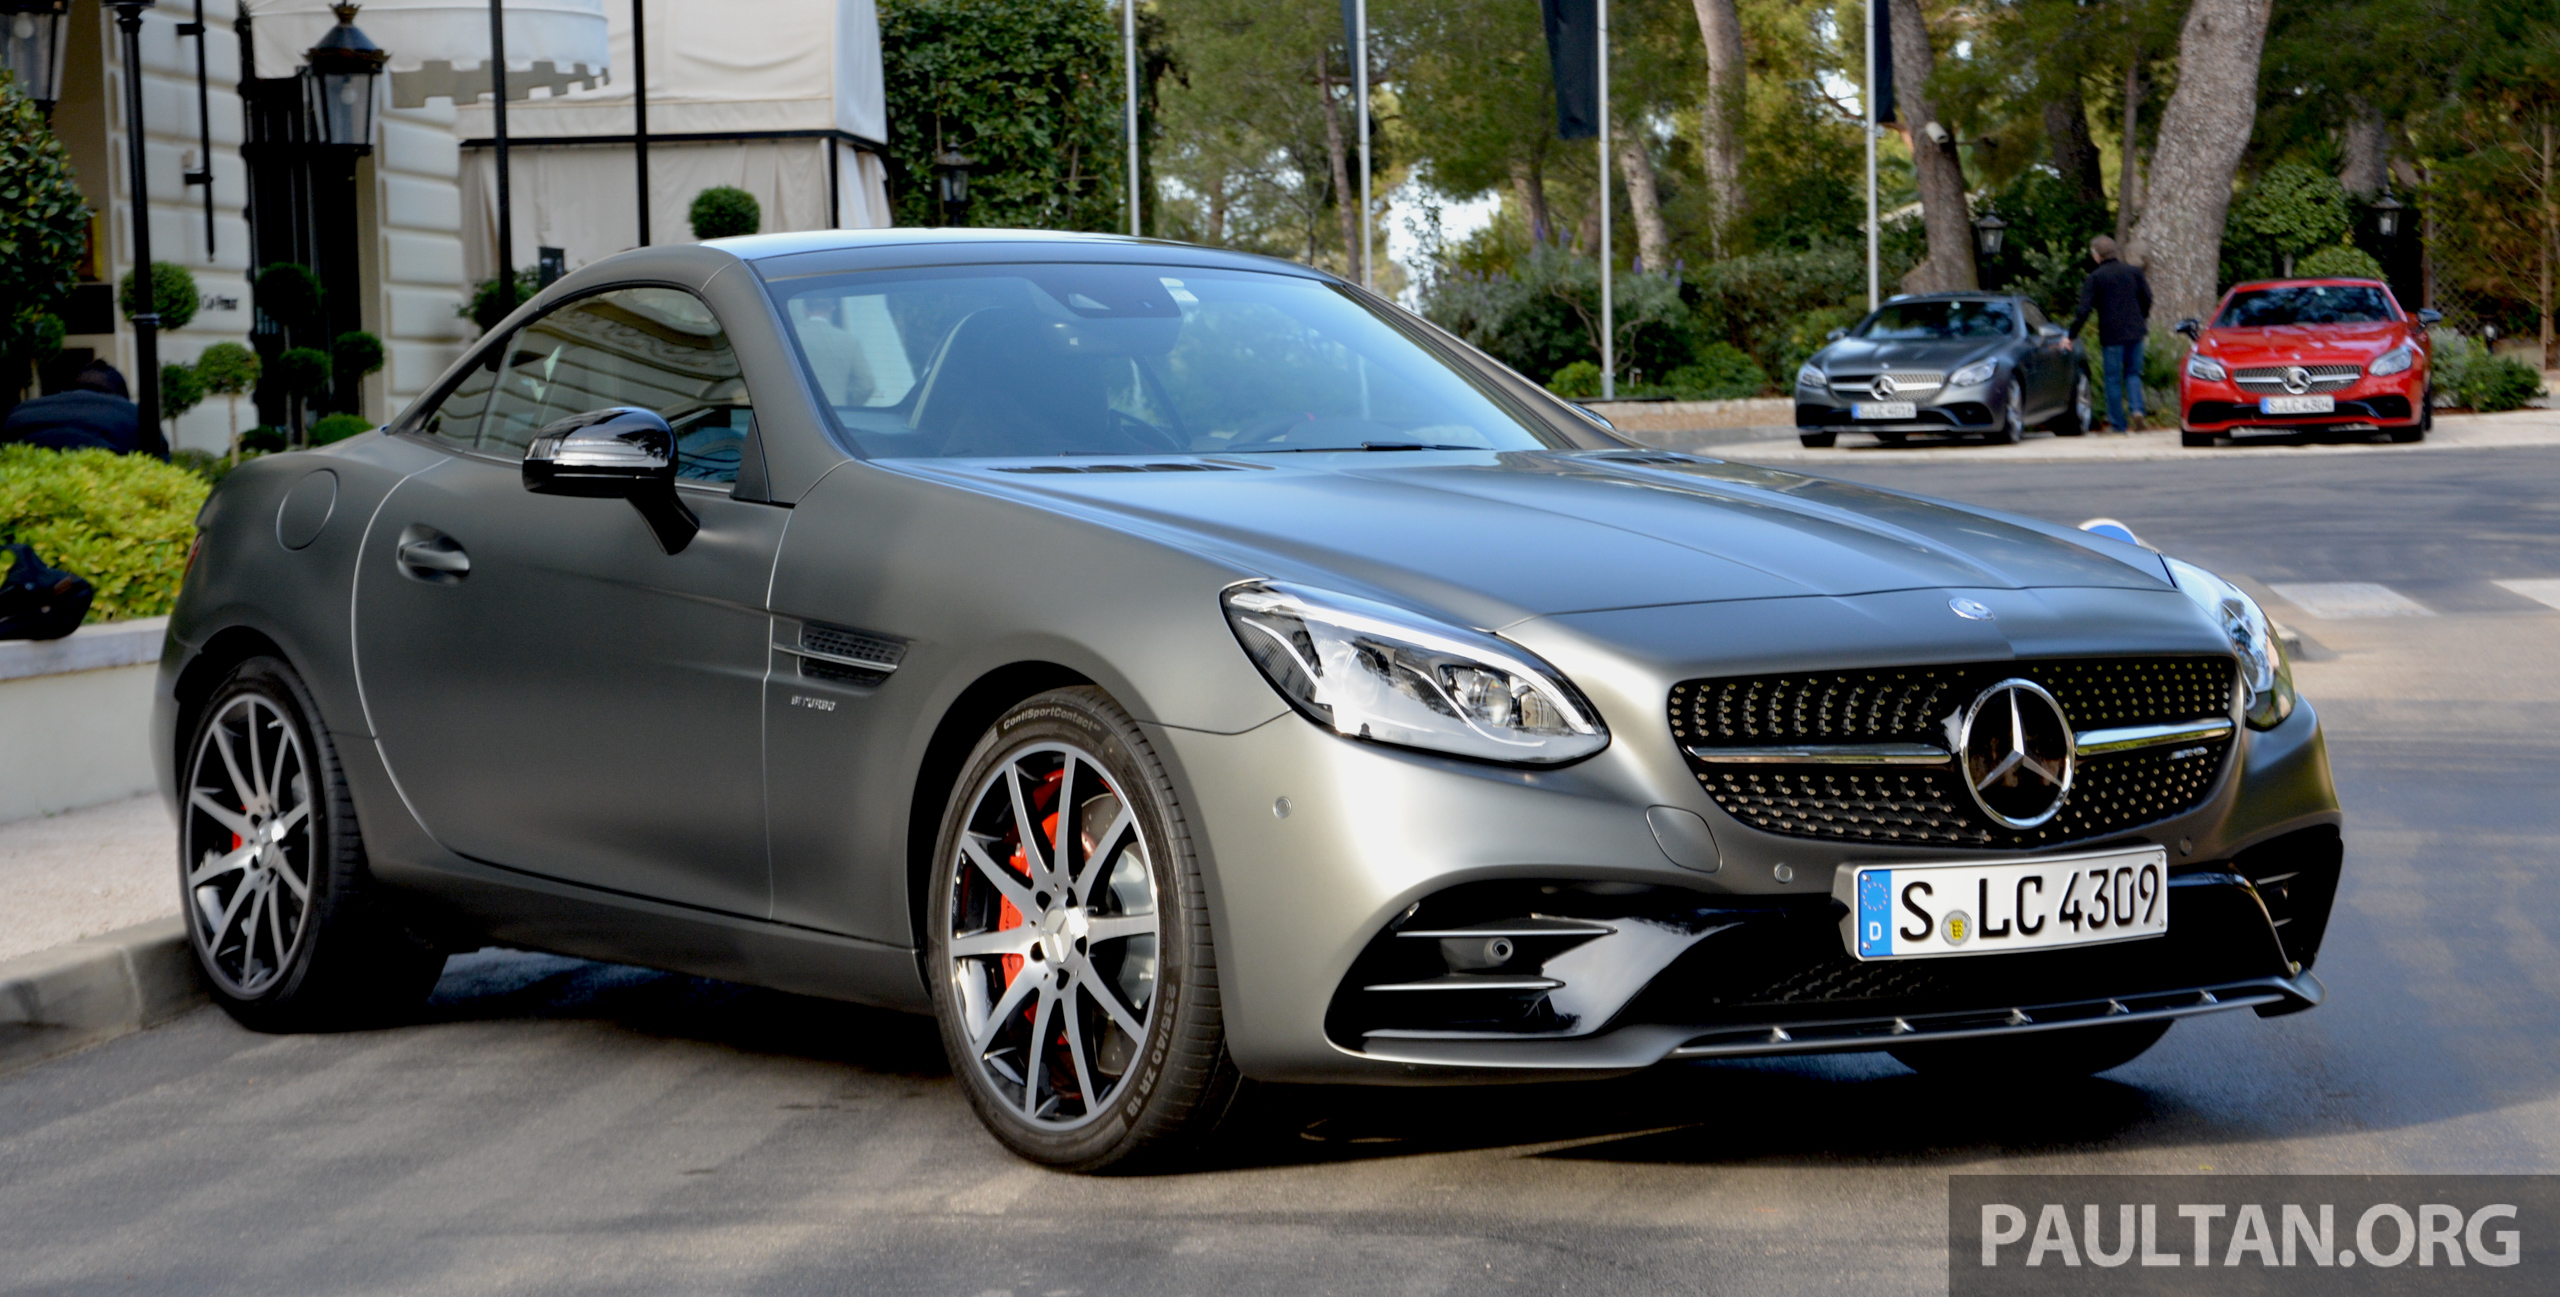 Driven mercedes amg slc43 in the french riviera image 474507 for Mercedes benz amg slc 43